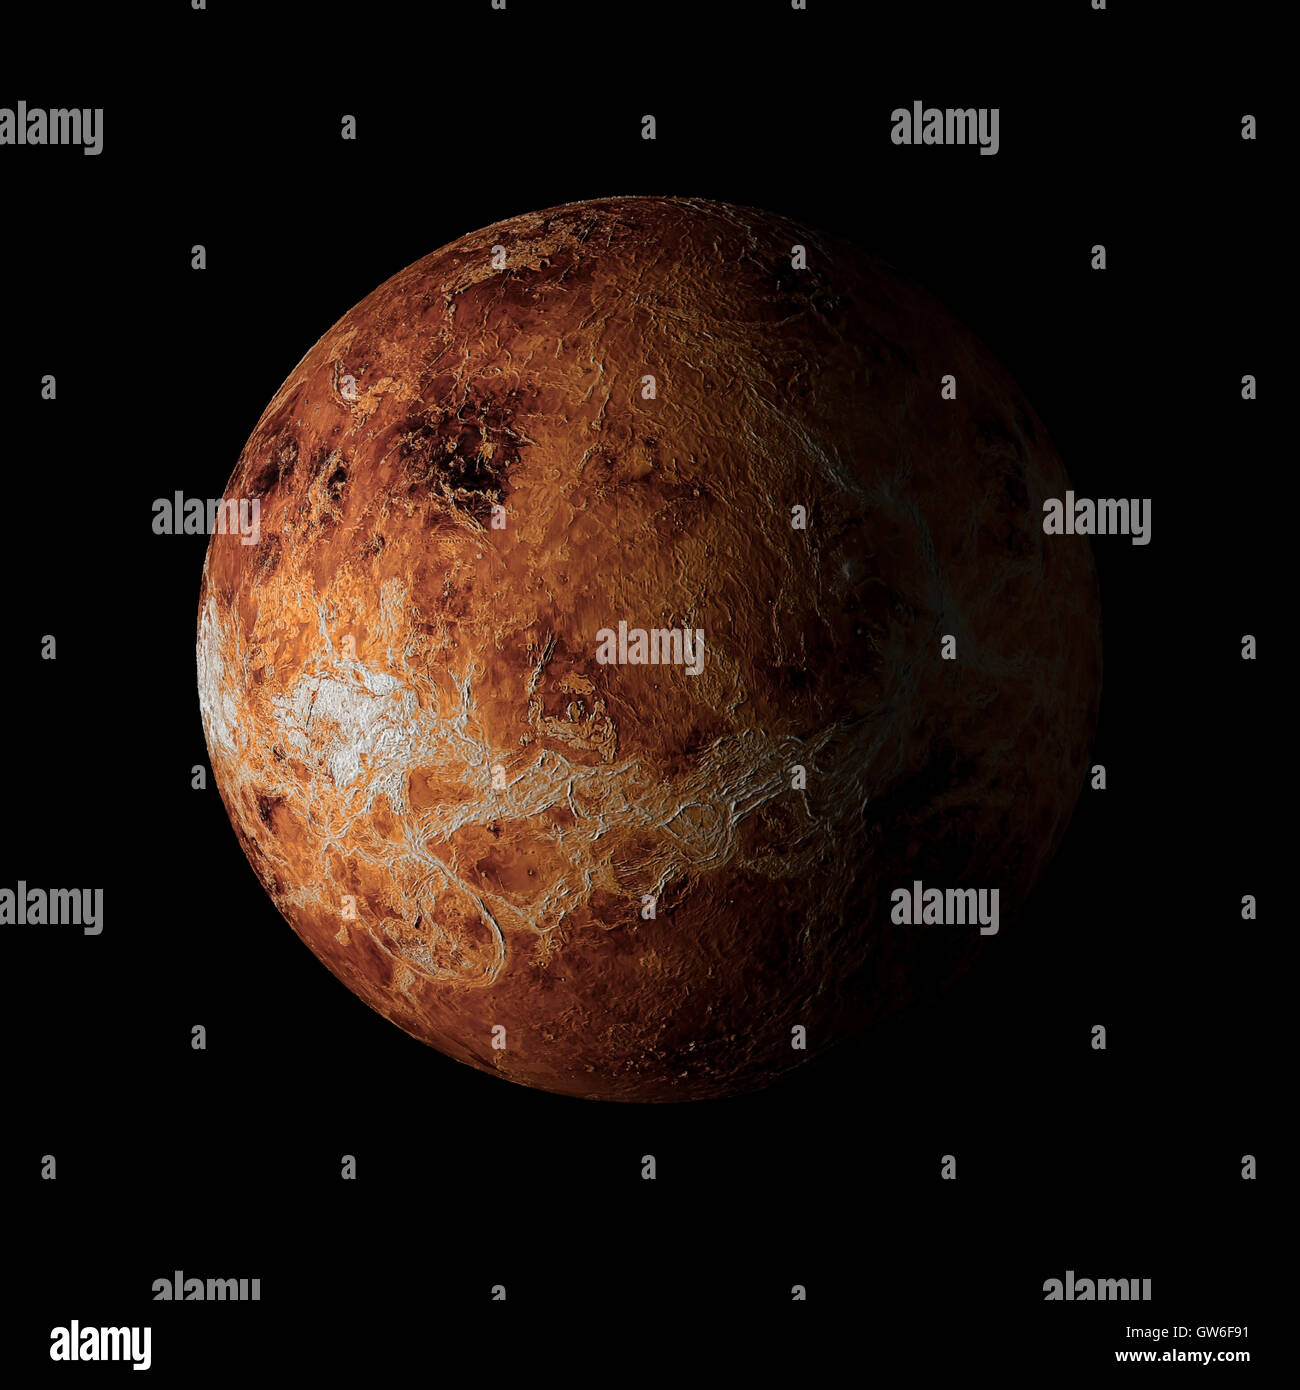 Solar system planet Venus on black background 3d rendering. Elements of this image furnished by NASA - Stock Image